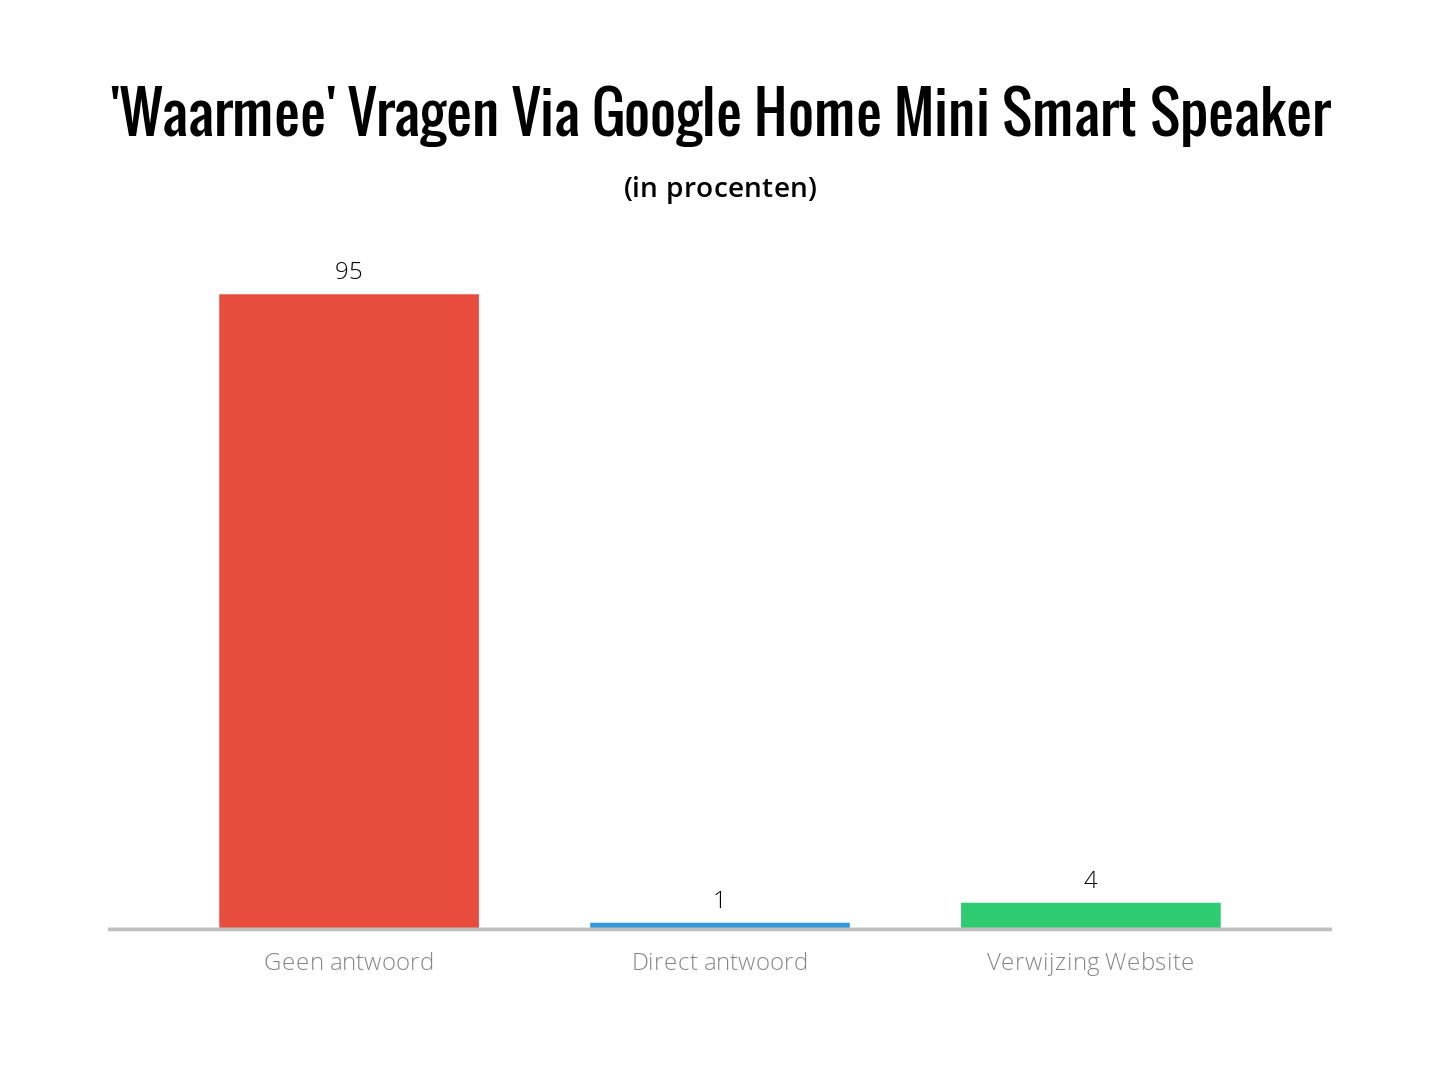 Waarmee vragen via Google home mini smart speaker